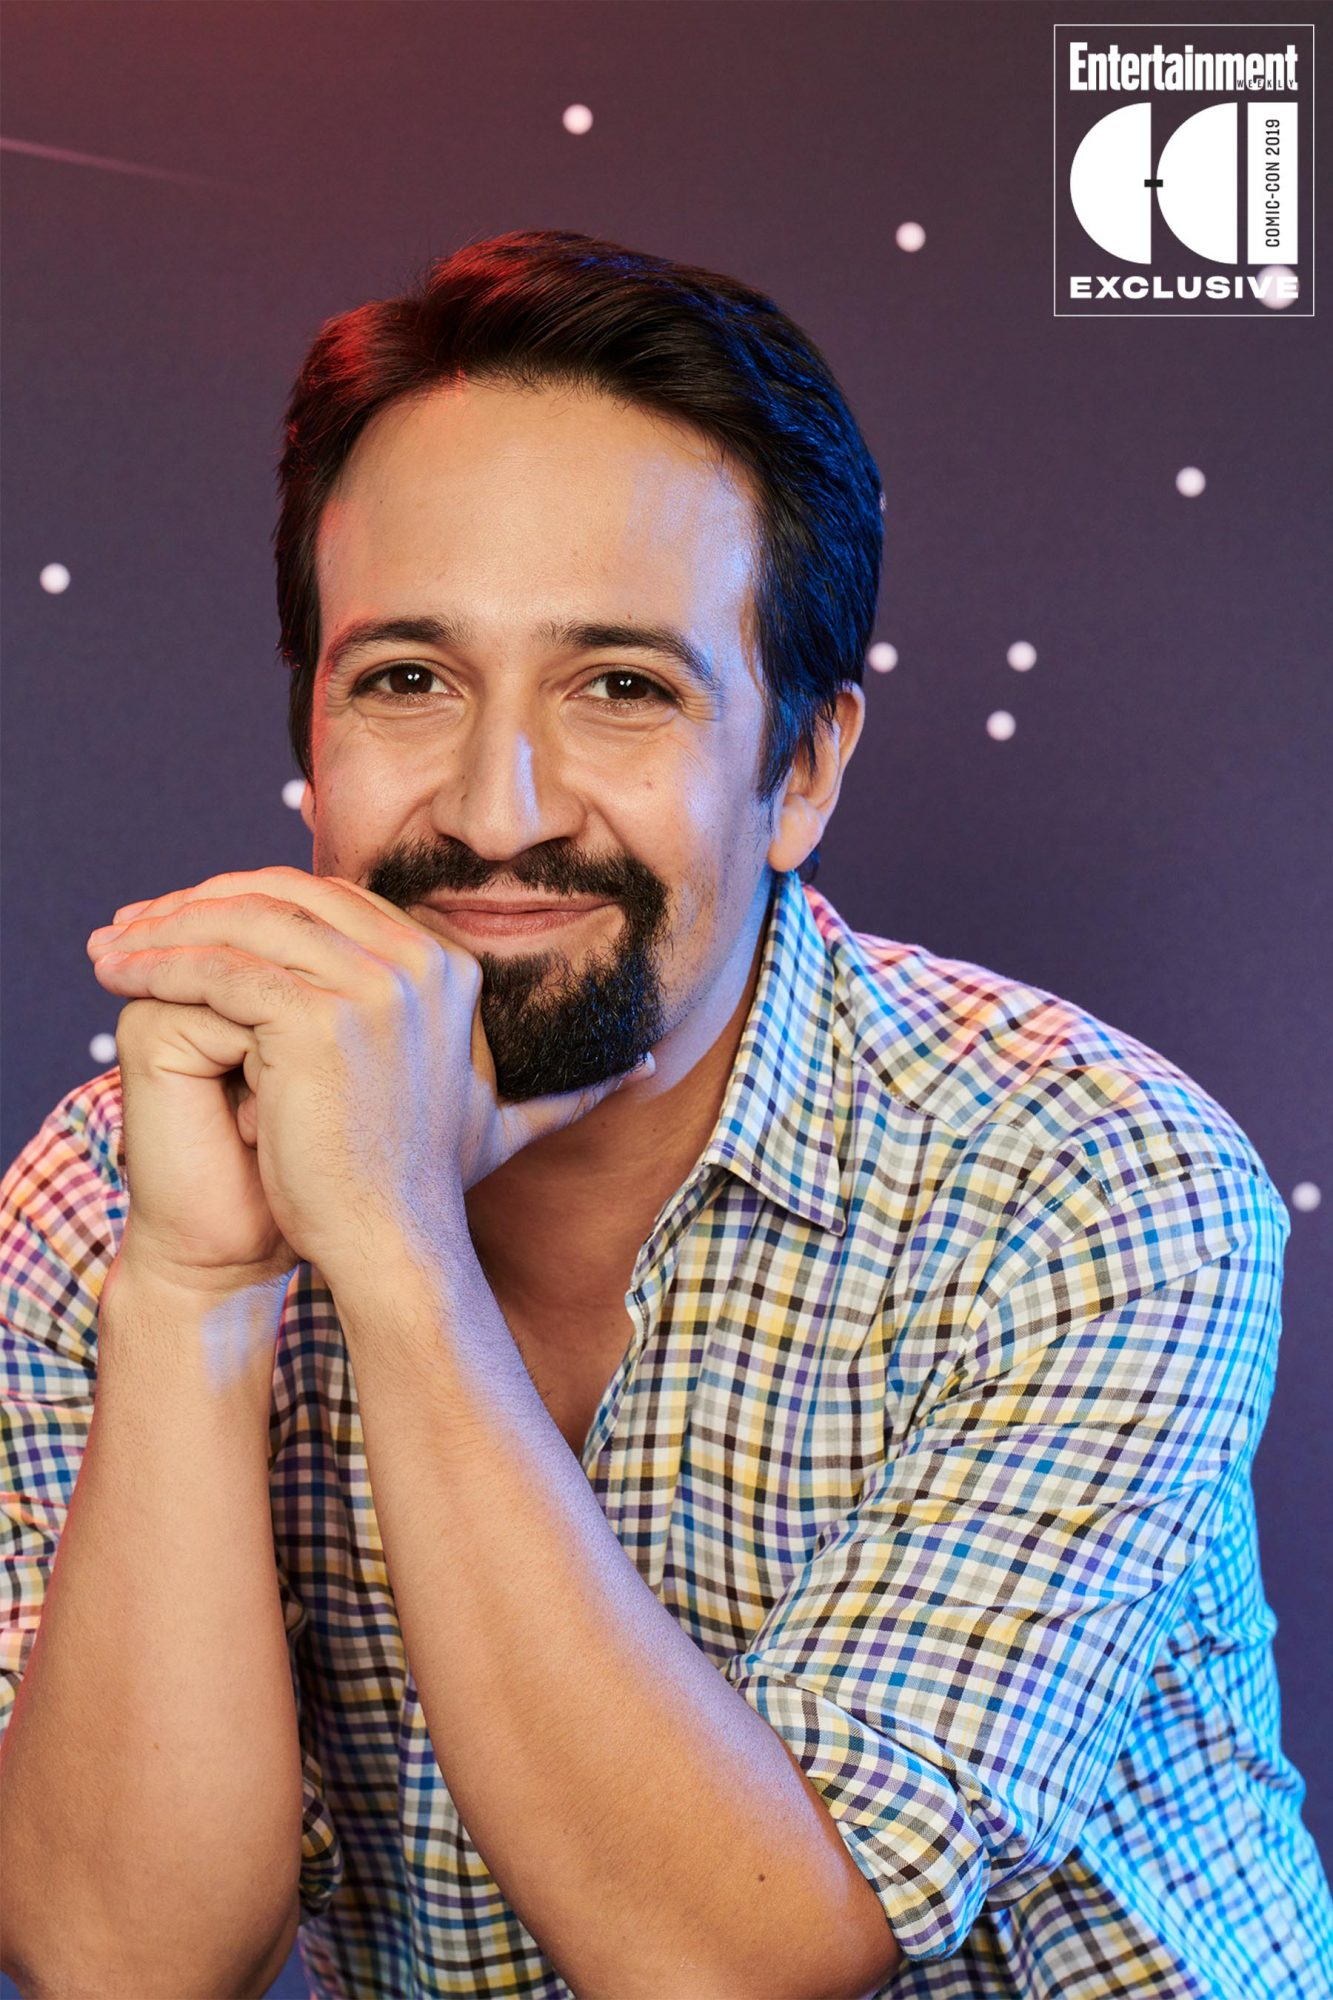 Day 1 - 2019 SDCC - San Diego Comic-con Lin-Manuel Miranda photographed in the Entertainment Weekly portrait studio during the 2019 San Diego Comic Con on July 18th, 2019 in San Diego, California. Photographed by: Eric Ray Davison Pictured: Lin-Manuel Miranda Film/Show: His Dark Materials